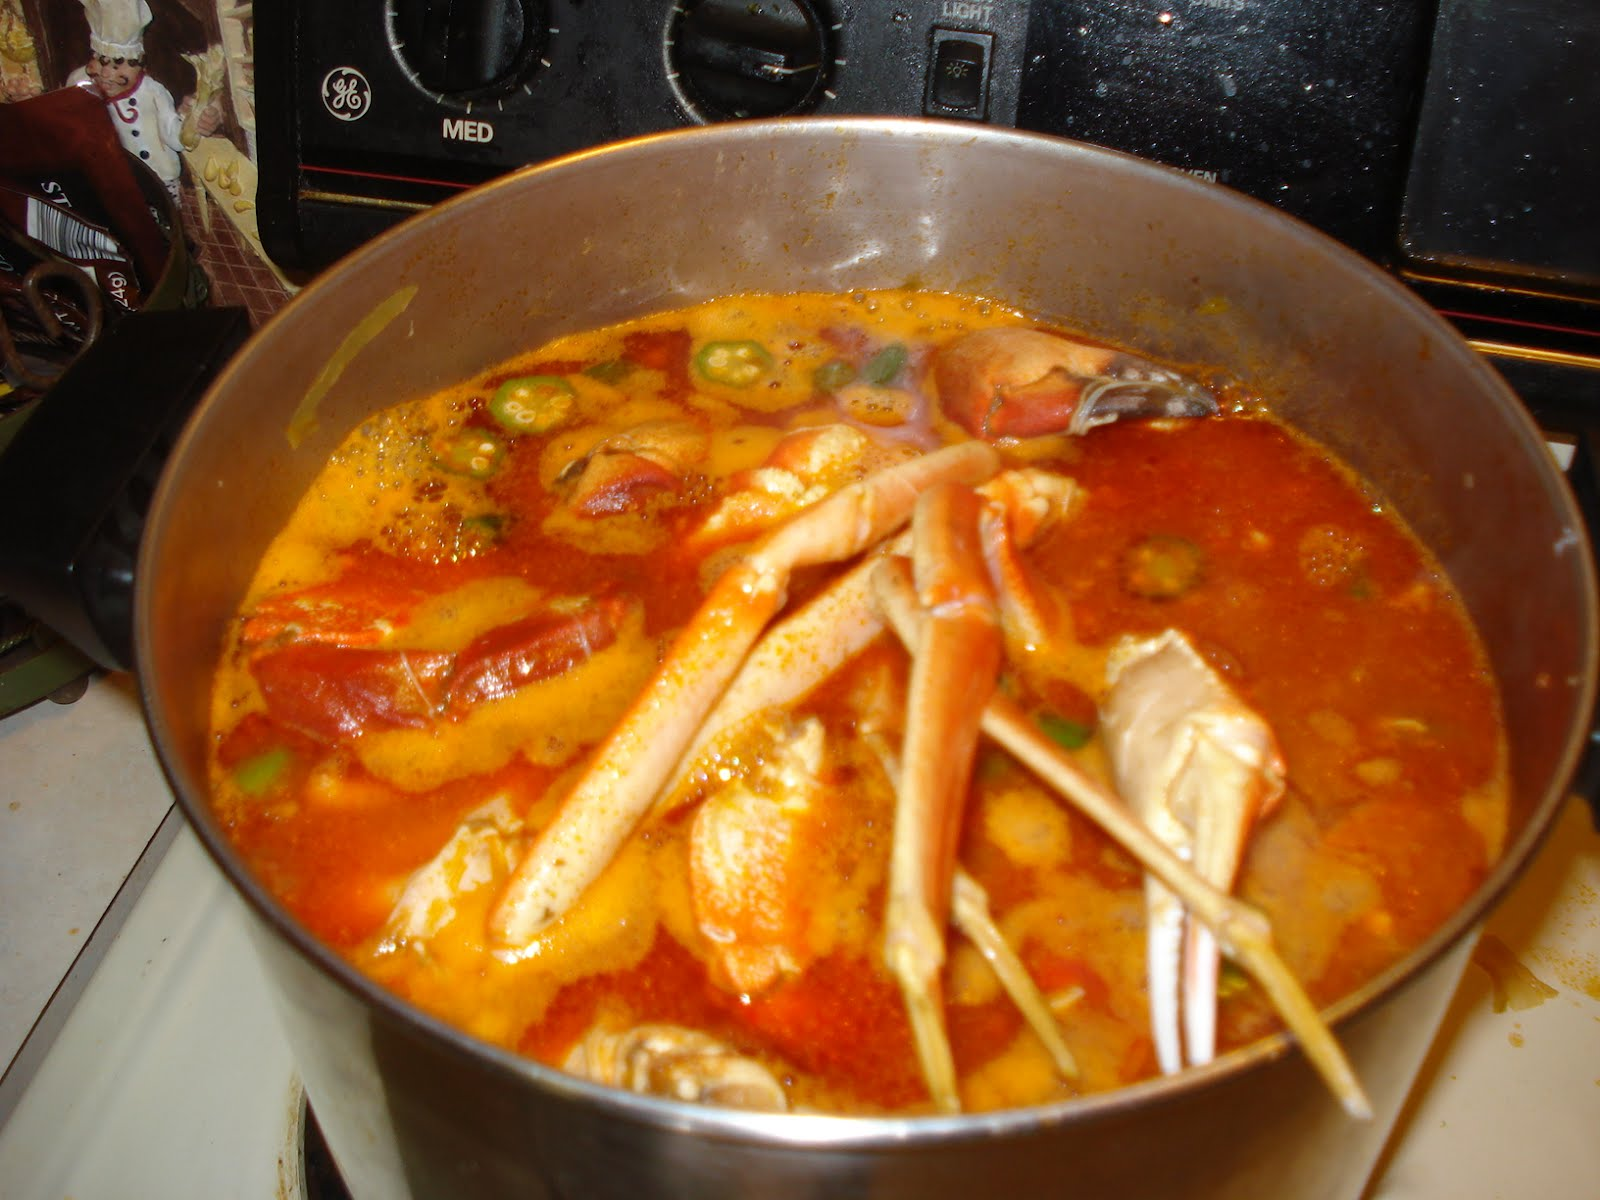 This Aint No Game Show Who Dat Cooking Super Bowl Gumbo Edwina Orange Slip On Posted By Ben A Marine At 618 Pm